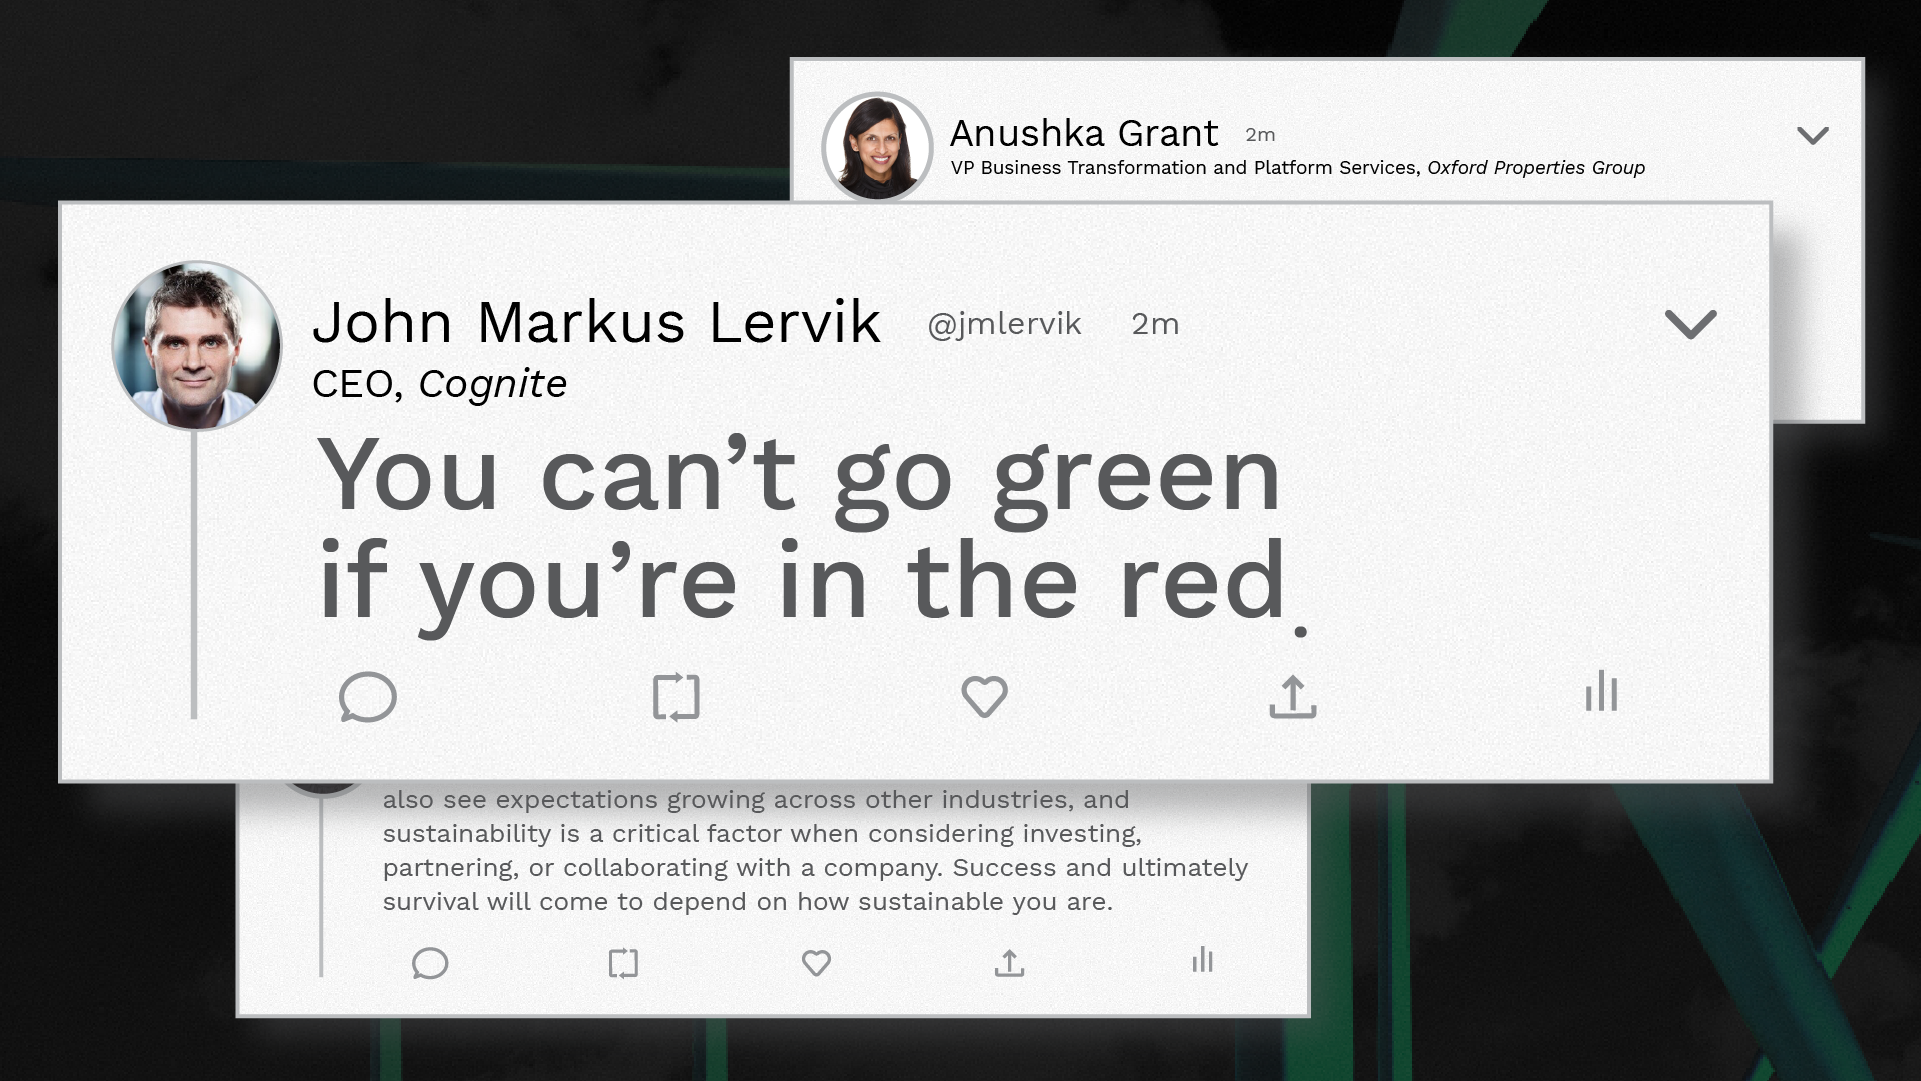 You can't go green if you're in the red